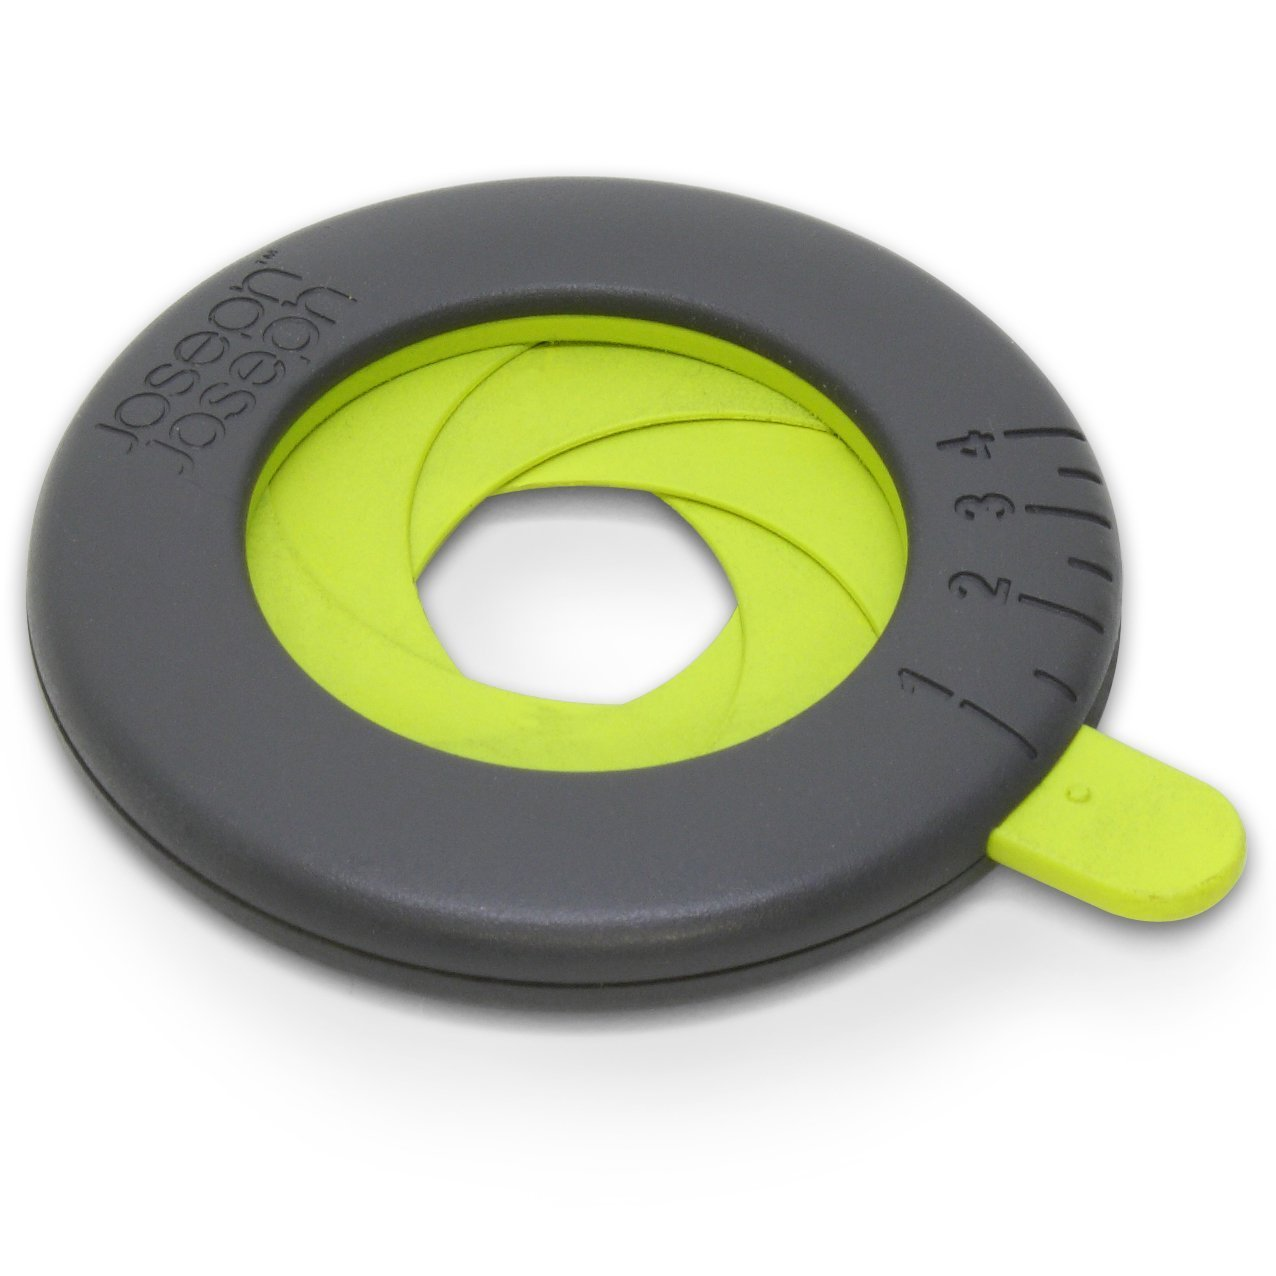 Joseph Joseph Adjustable Spaghetti Measure - Grey/Green SPMG012HC Measuring_Tools Tools_Gadgets_Barware gift